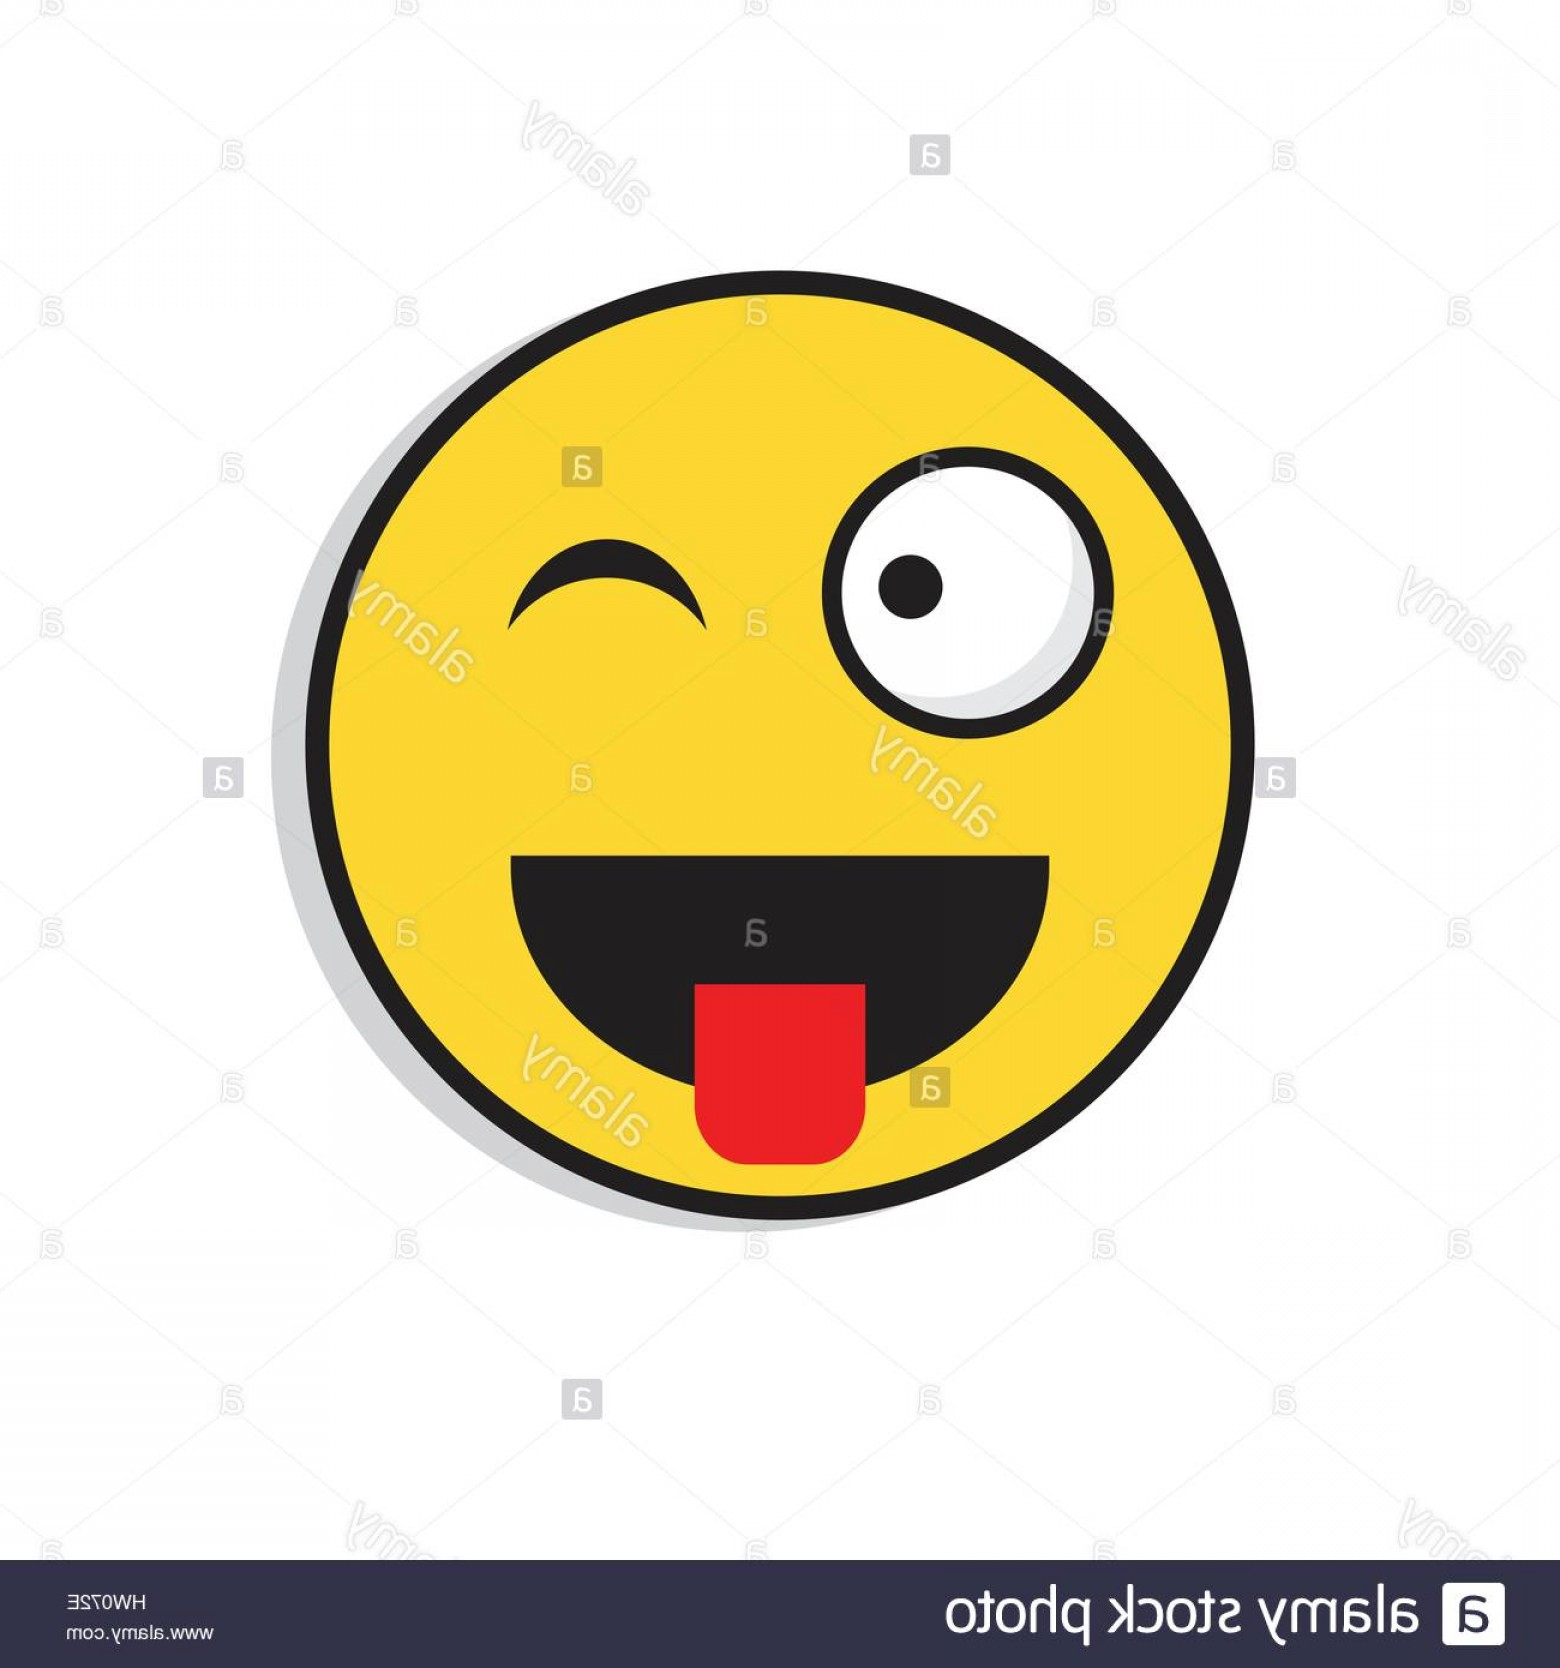 Smiley-Face Winking Vector: Stock Photo Yellow Smiling Face Wink Positive People Emotion Icon